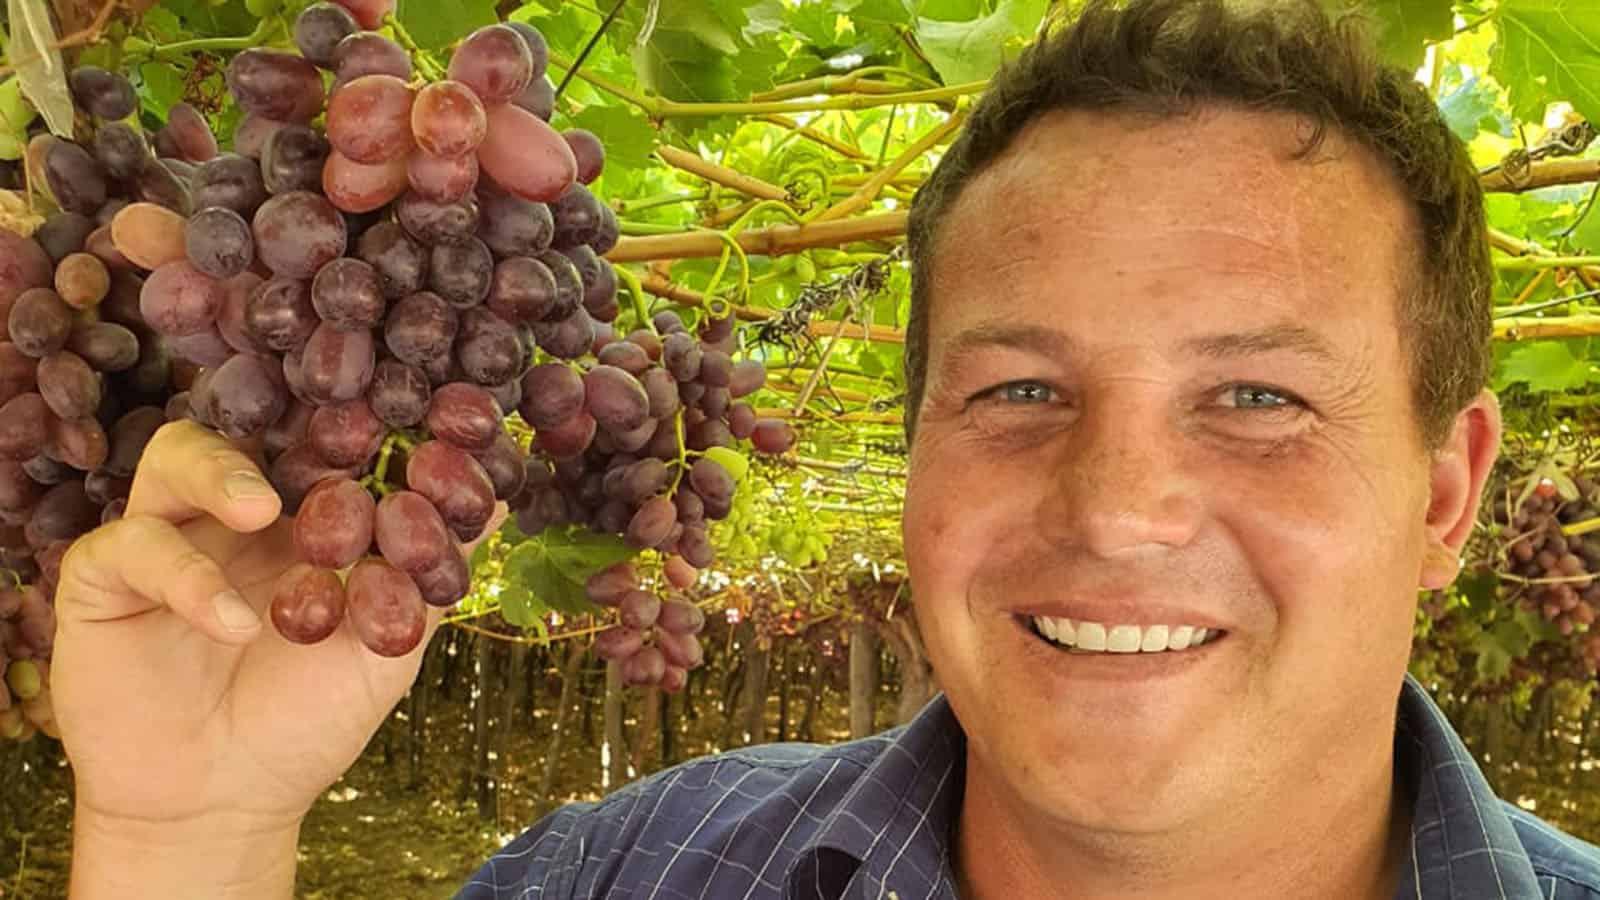 Michael Vorster is one of many commercial farmers in South Africa who are working to break the stigma that farmers do not care for their workers. He has introduced a new strategy to ensure the safe transportation of his farmworkers. Photo: Supplied/Food For Mzansi